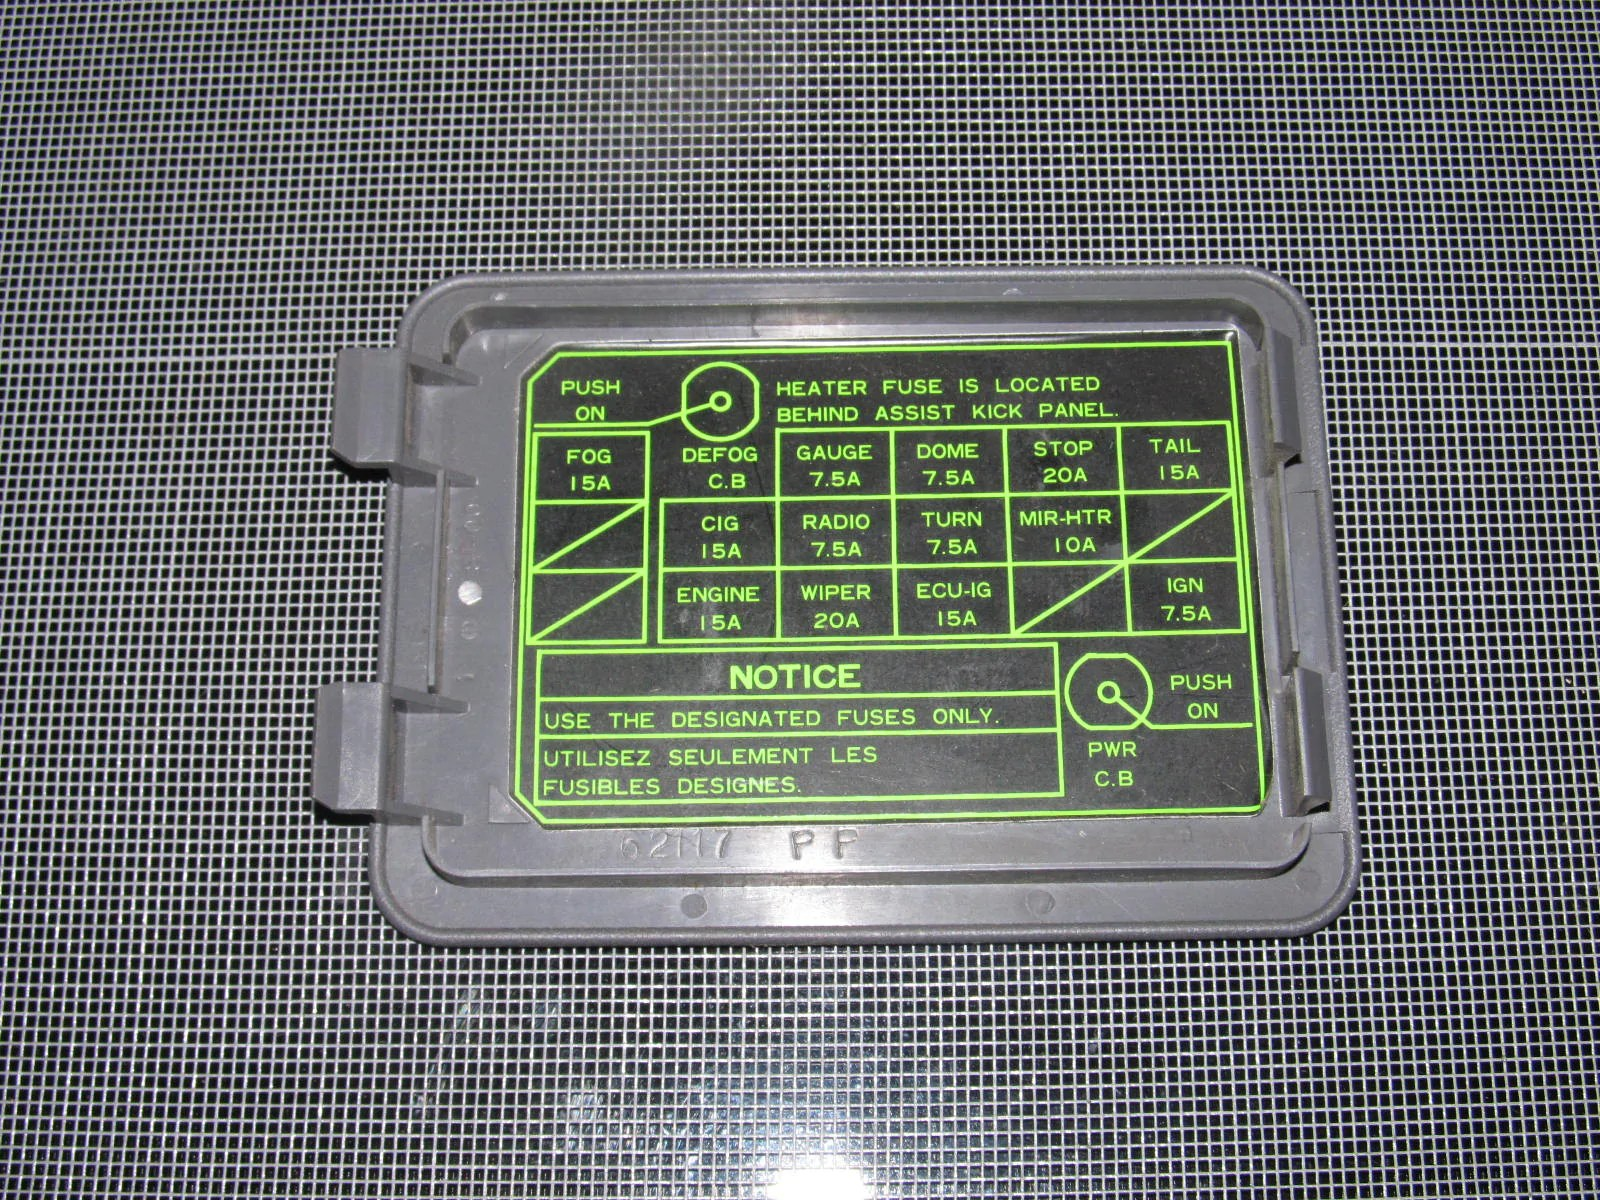 hight resolution of 86 acura integra fuse box layout wiring diagrams u2022 rh laurafinlay co uk 1994 acura integra